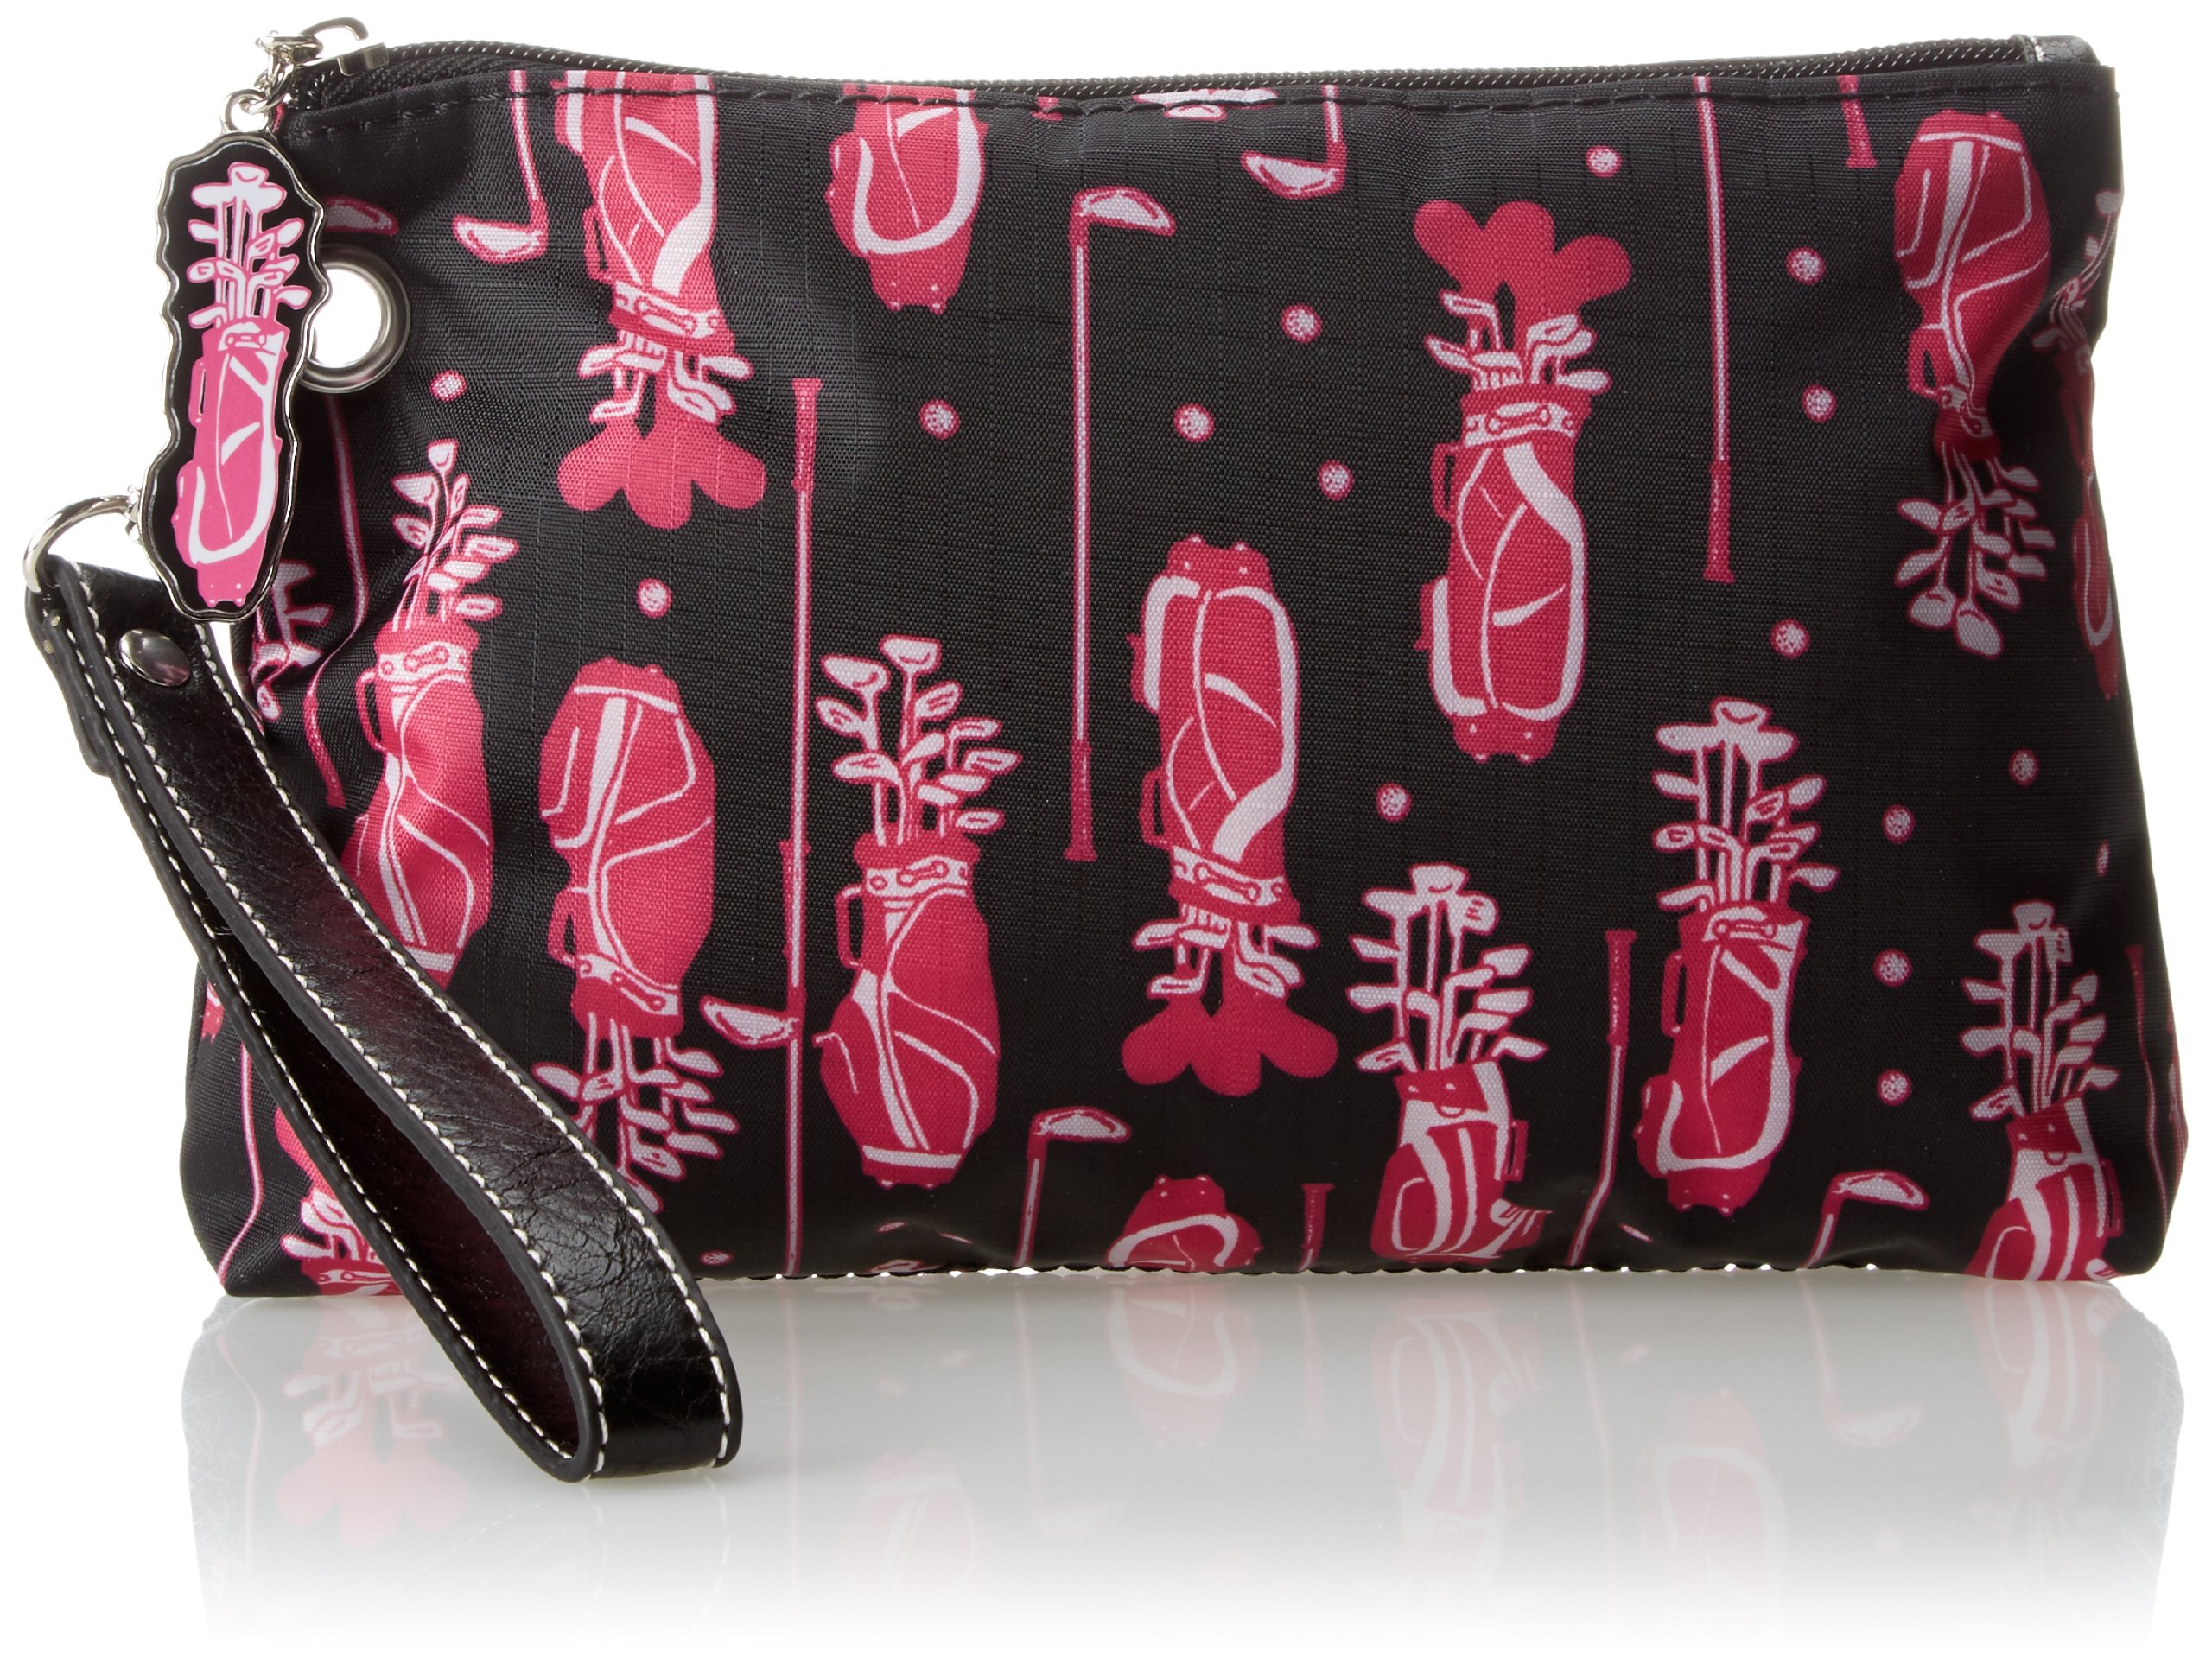 Sydney Love Fuchsia Golf Cosmetic Bag With Tee Cosmetic Case,Multi,One Size